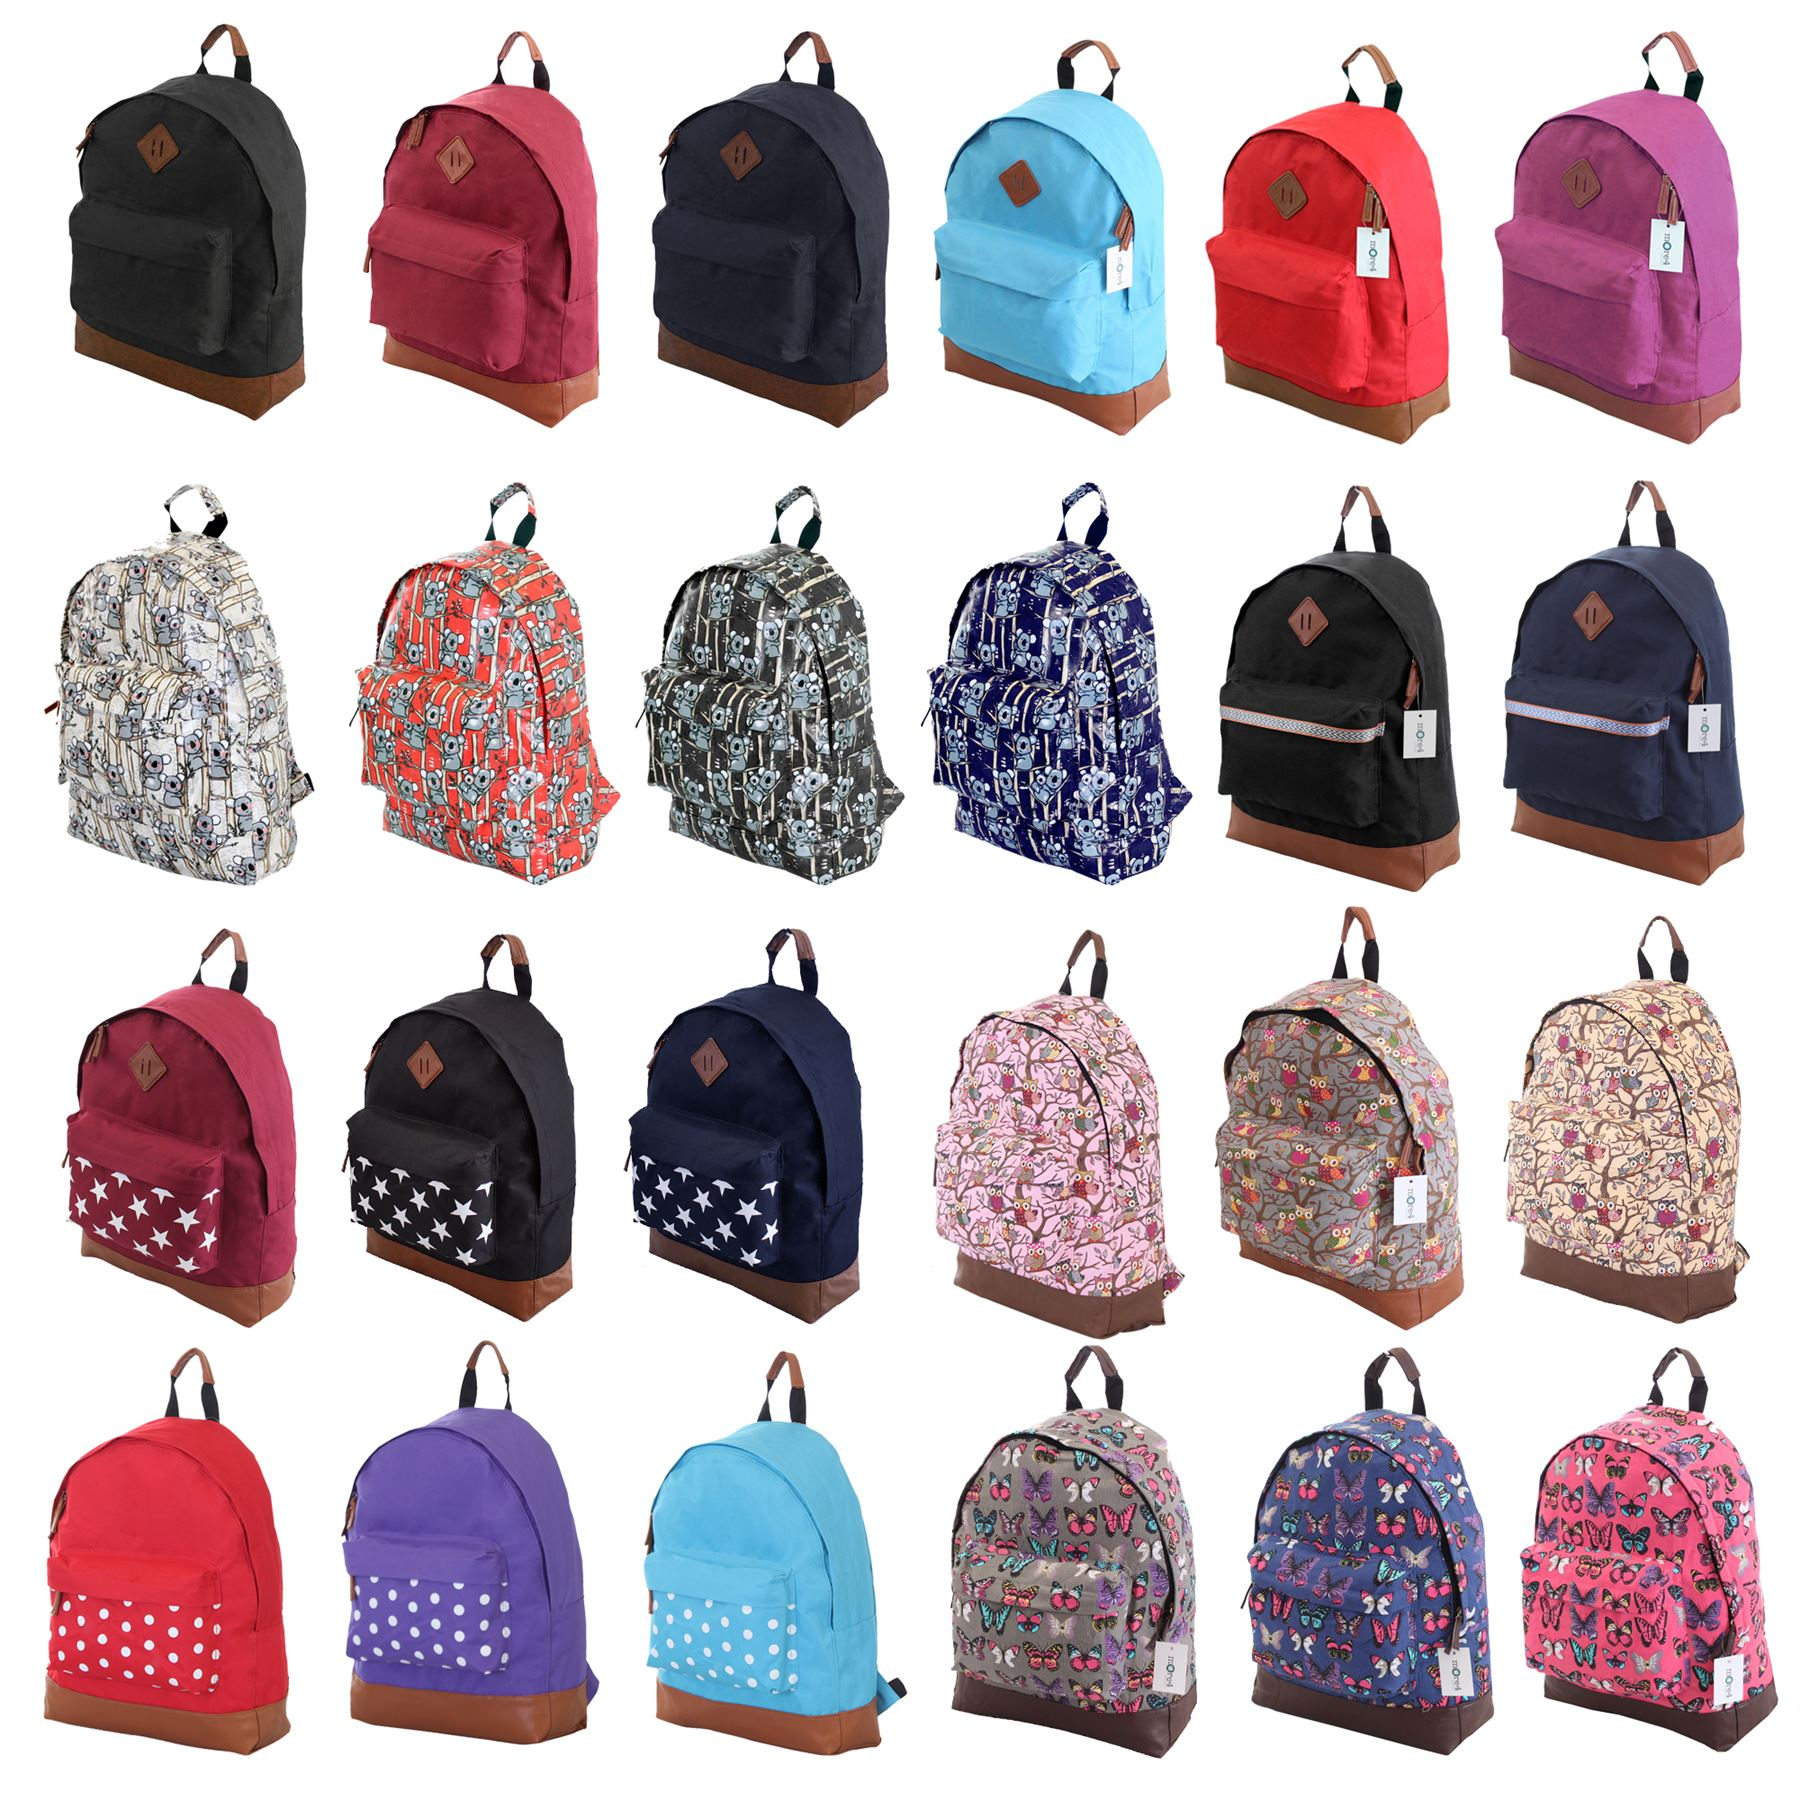 Backpacks High School Girls | Crazy Backpacks